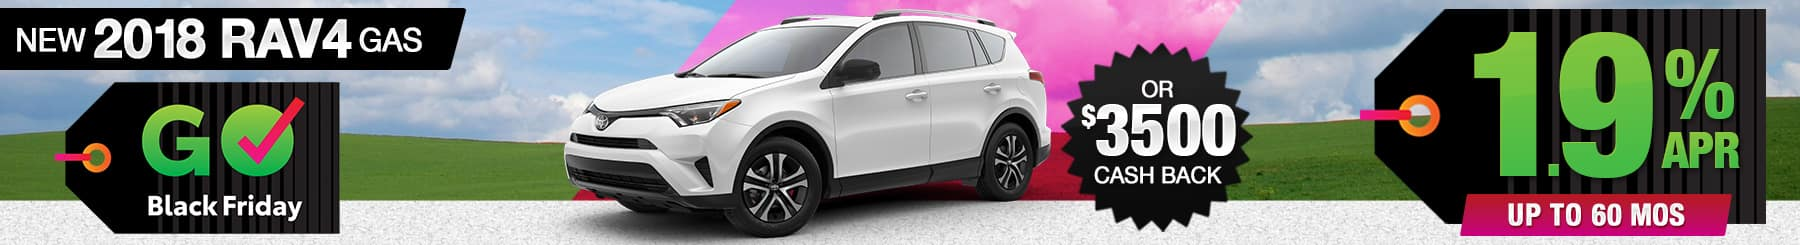 2018 Toyota RAV4 APR or Cash Back Special